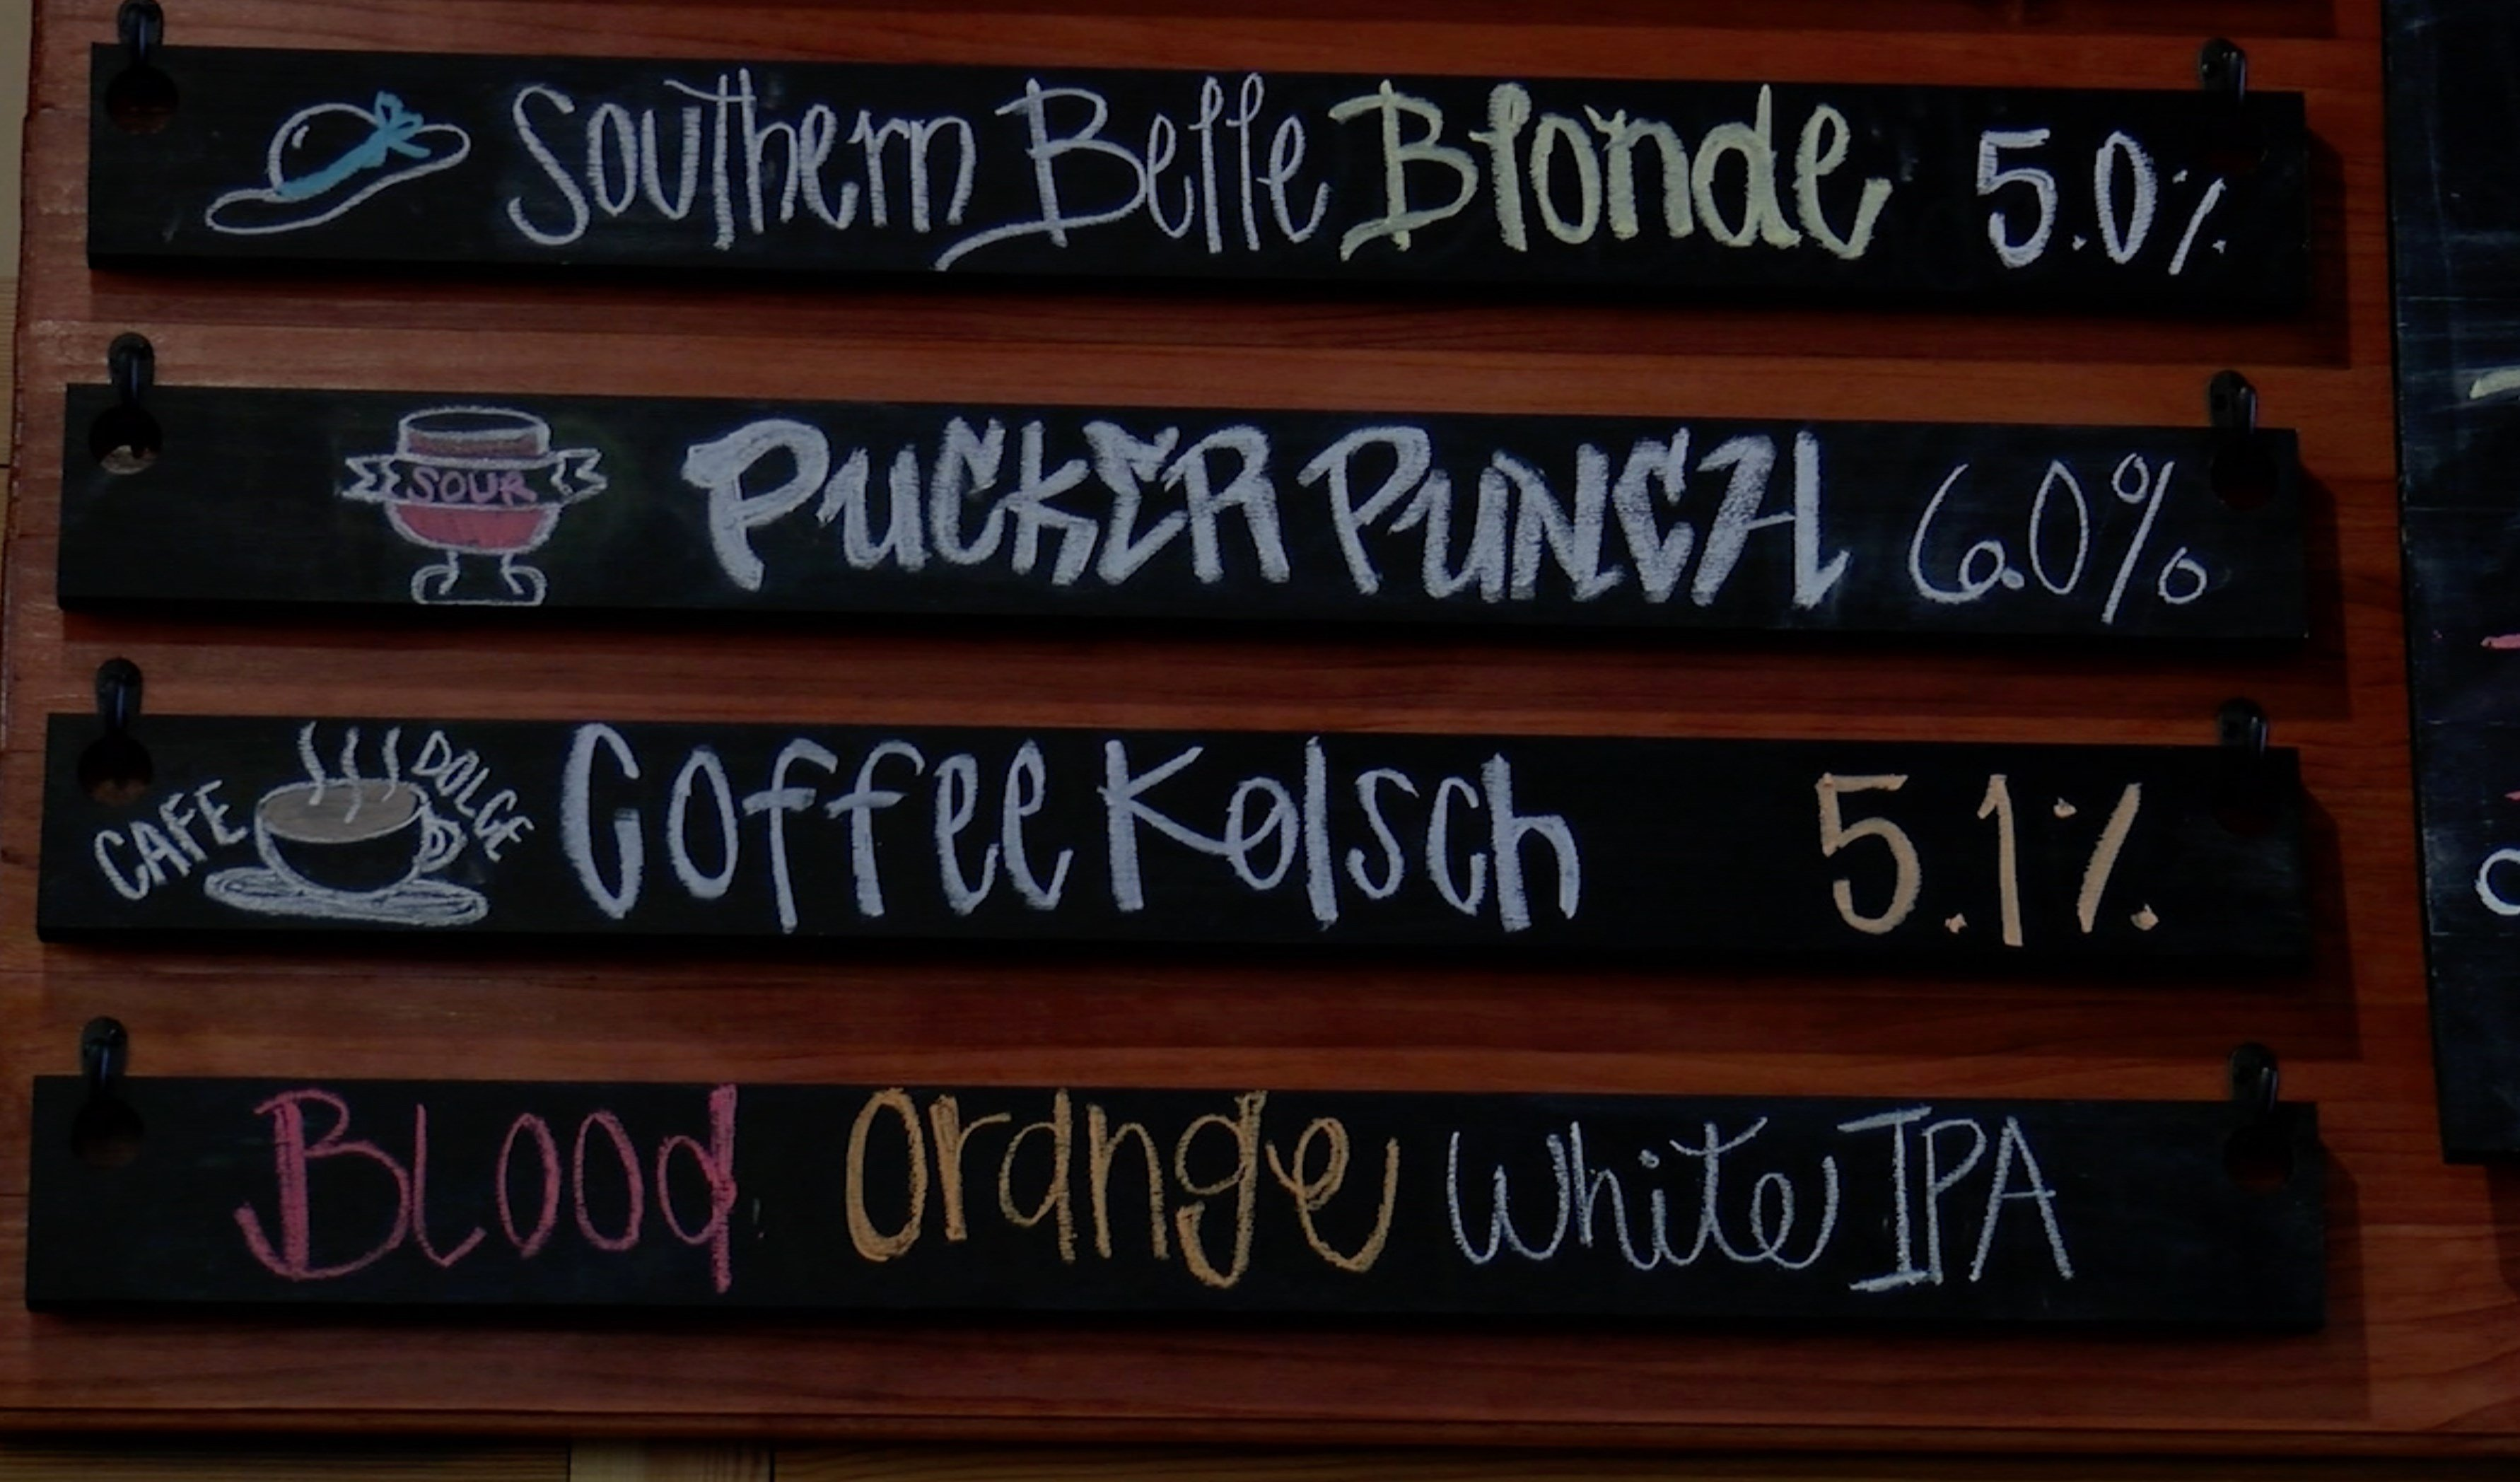 Twisted Spur's drink board advertises multiple craft beer selections.